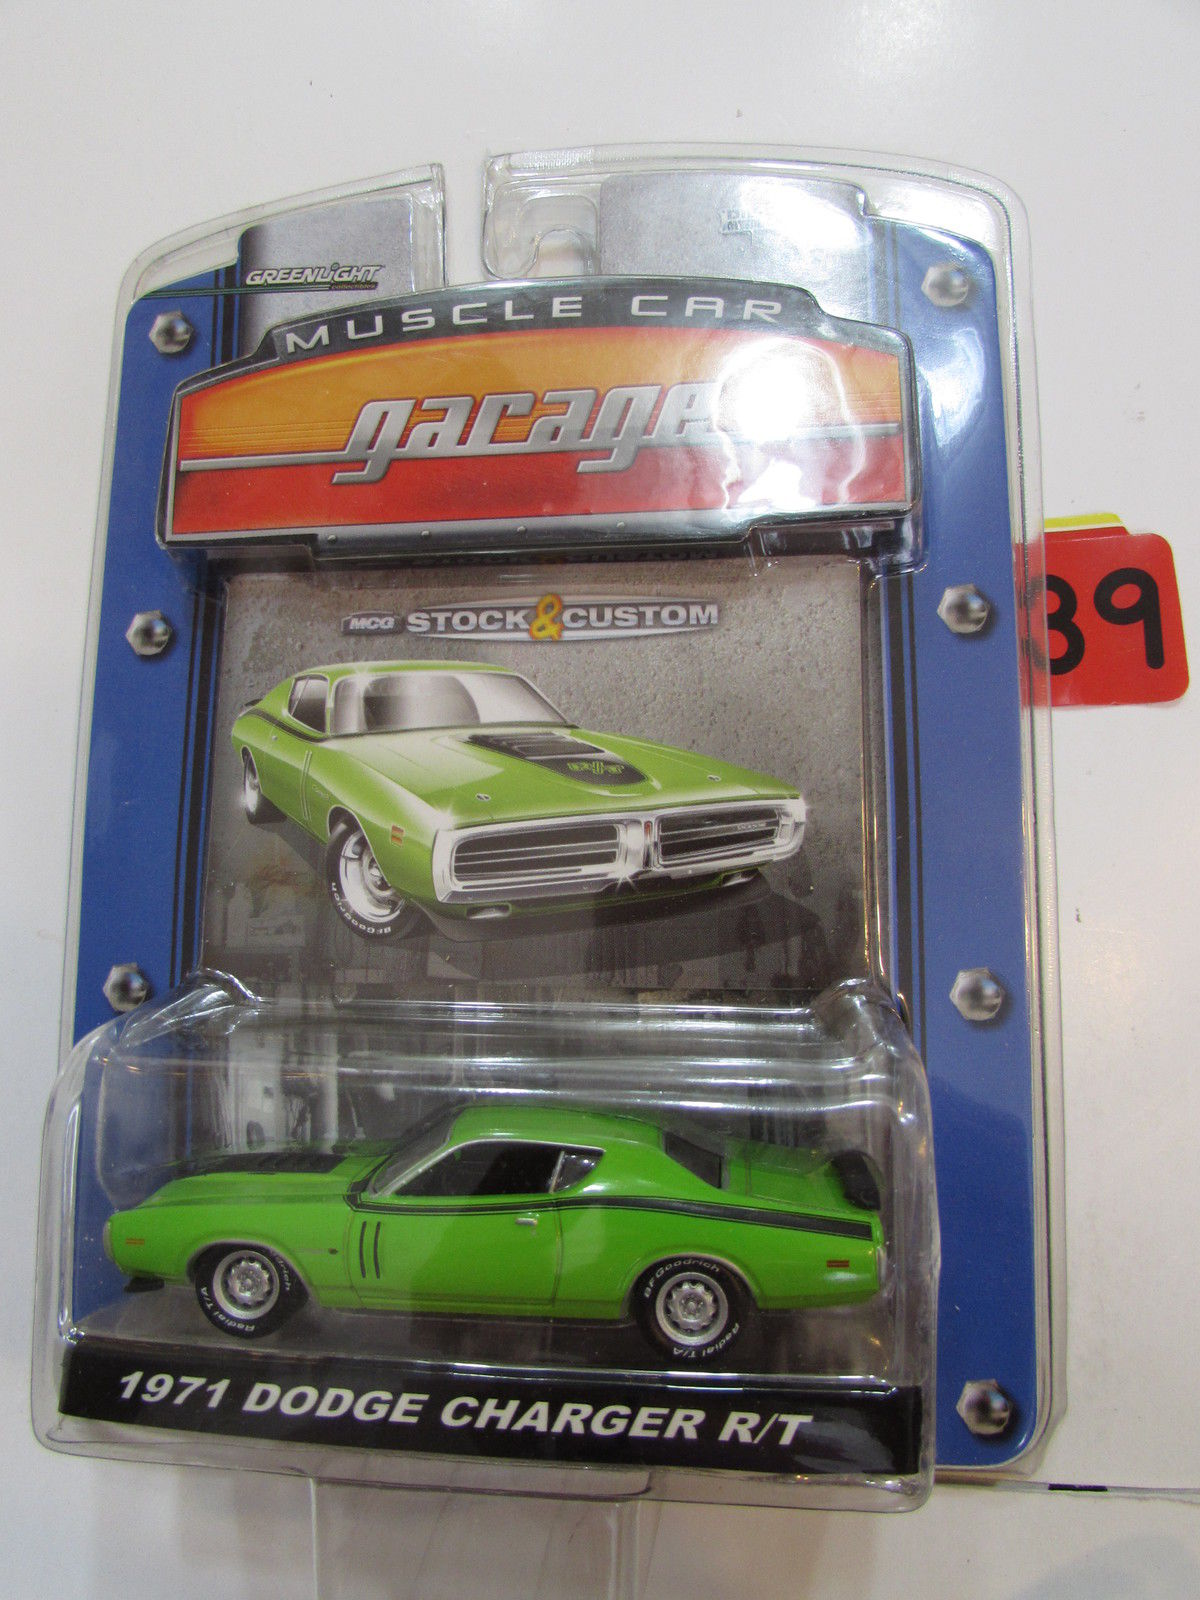 GREENLIGHT MUSCLE CAR GARAGE 1971 DODGE CHARGER R/T 1:64 SC